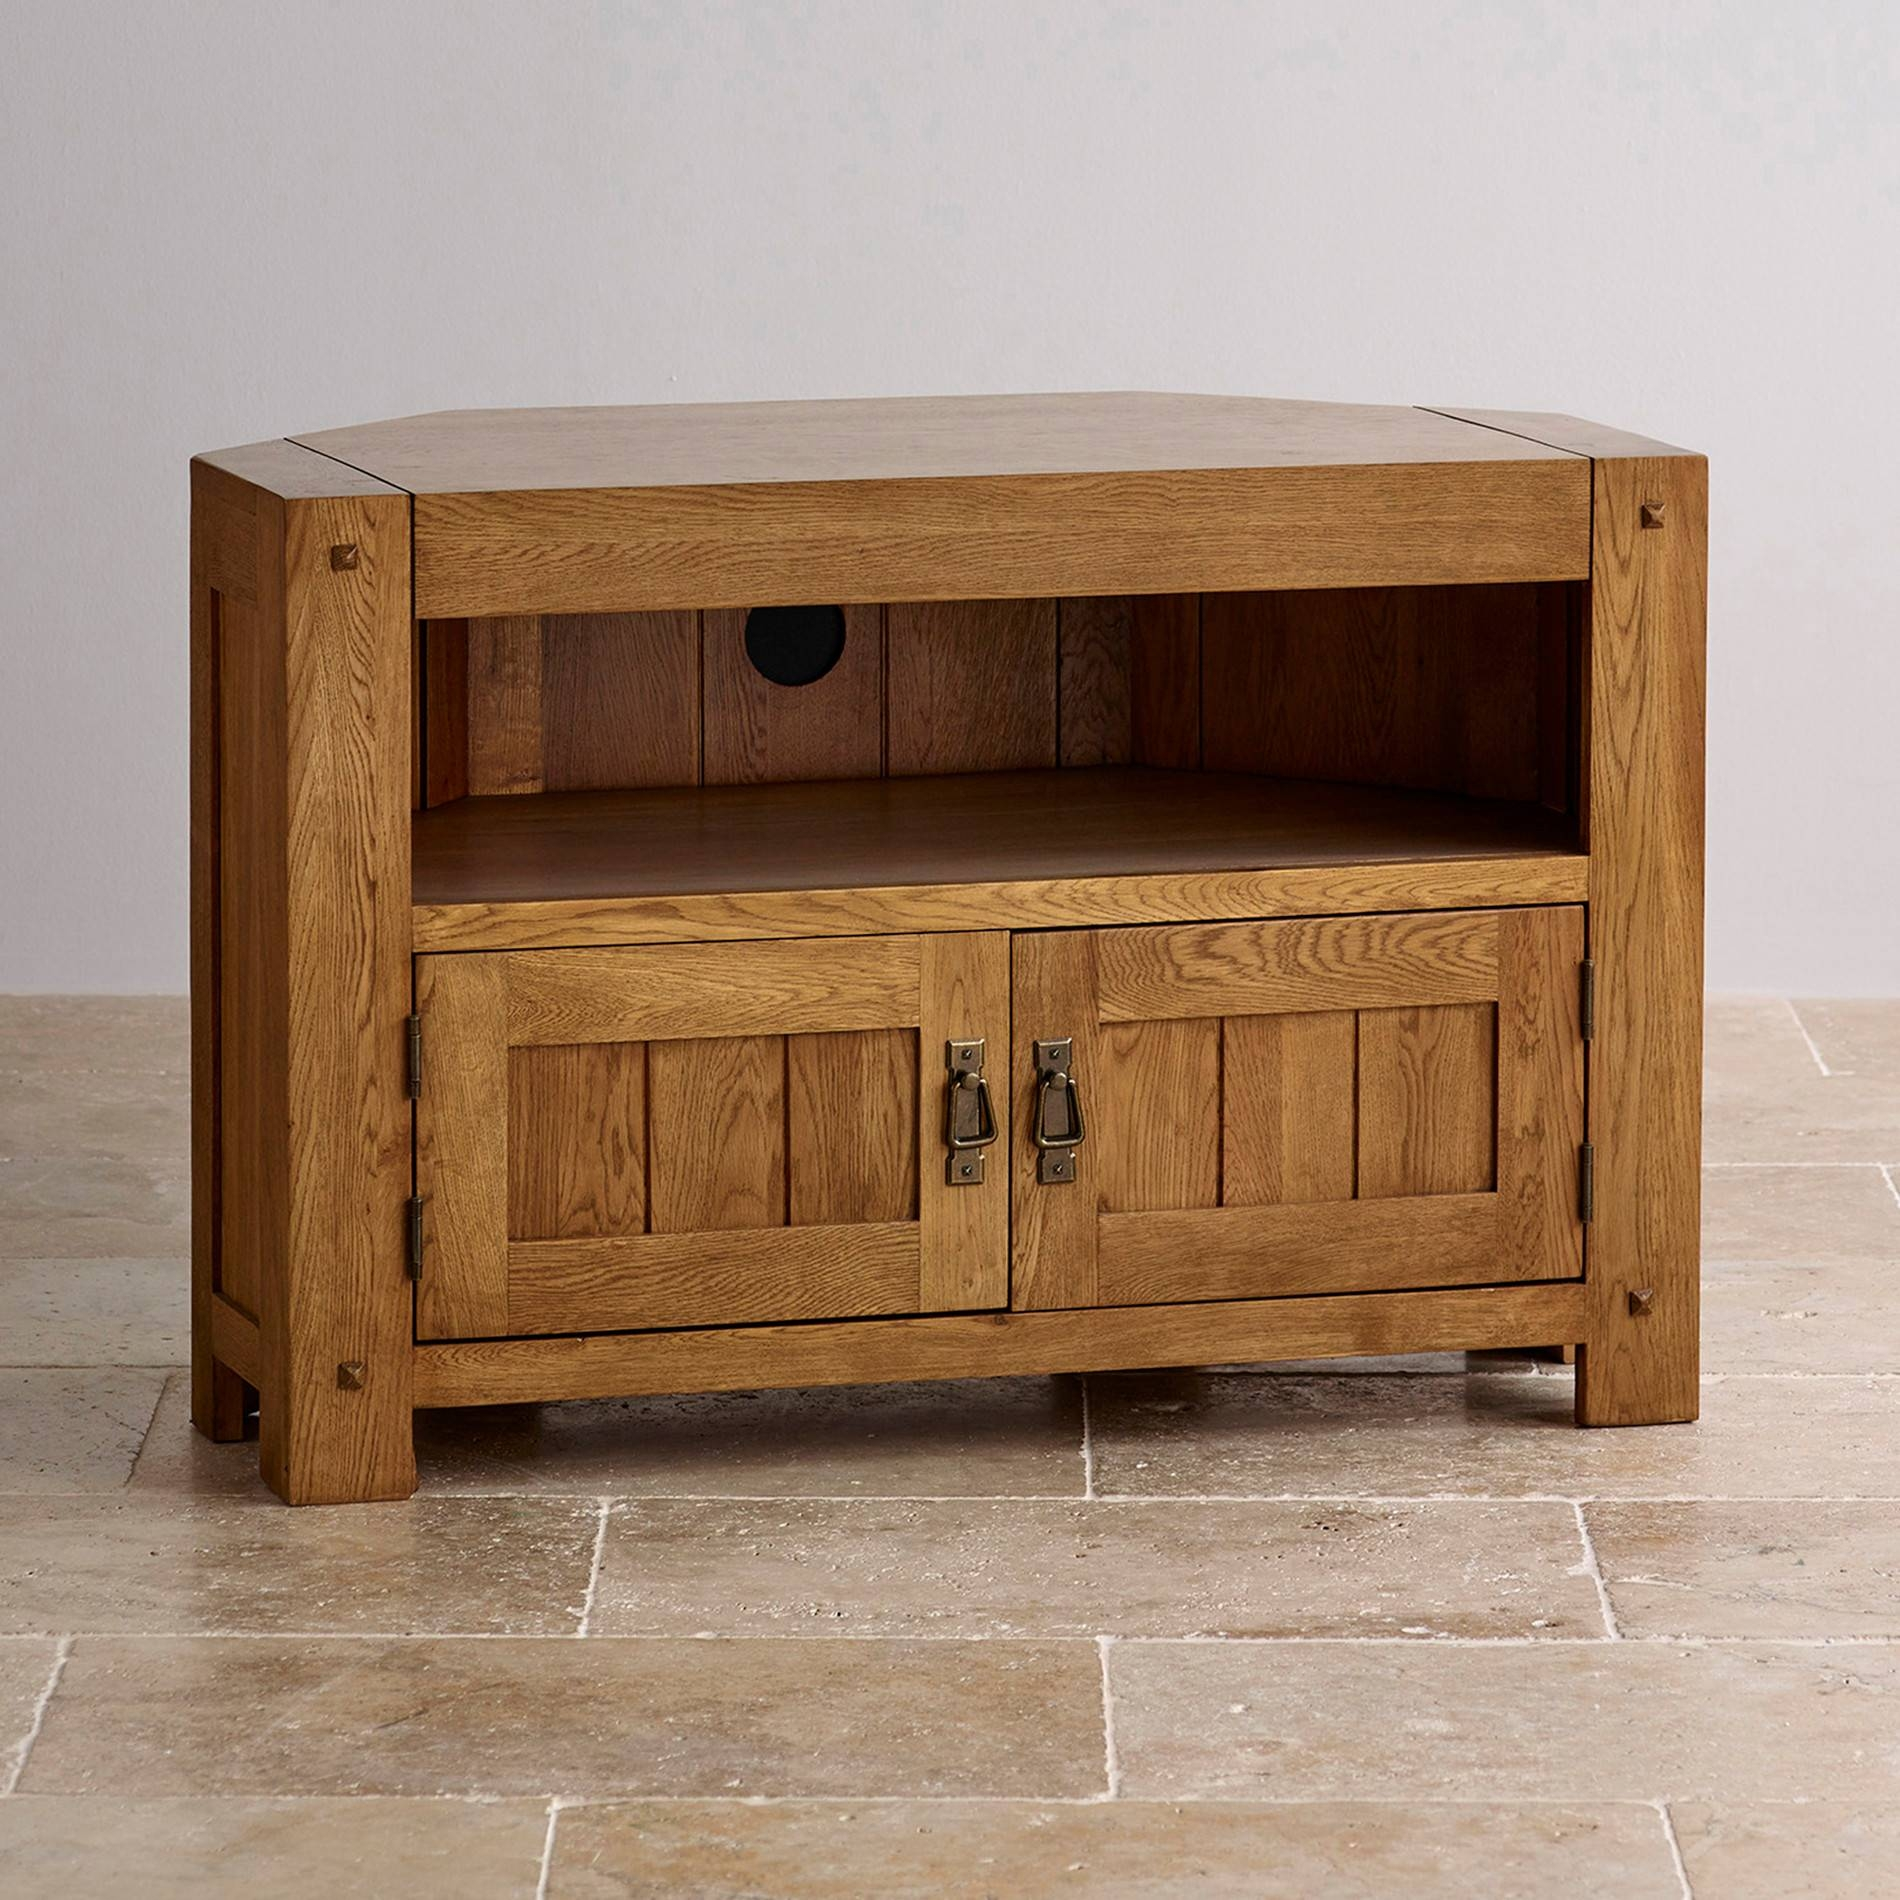 Quercus Corner Tv Cabinet In Rustic Oak | Oak Furniture Land Throughout Solid Oak Tv Cabinets (View 8 of 15)